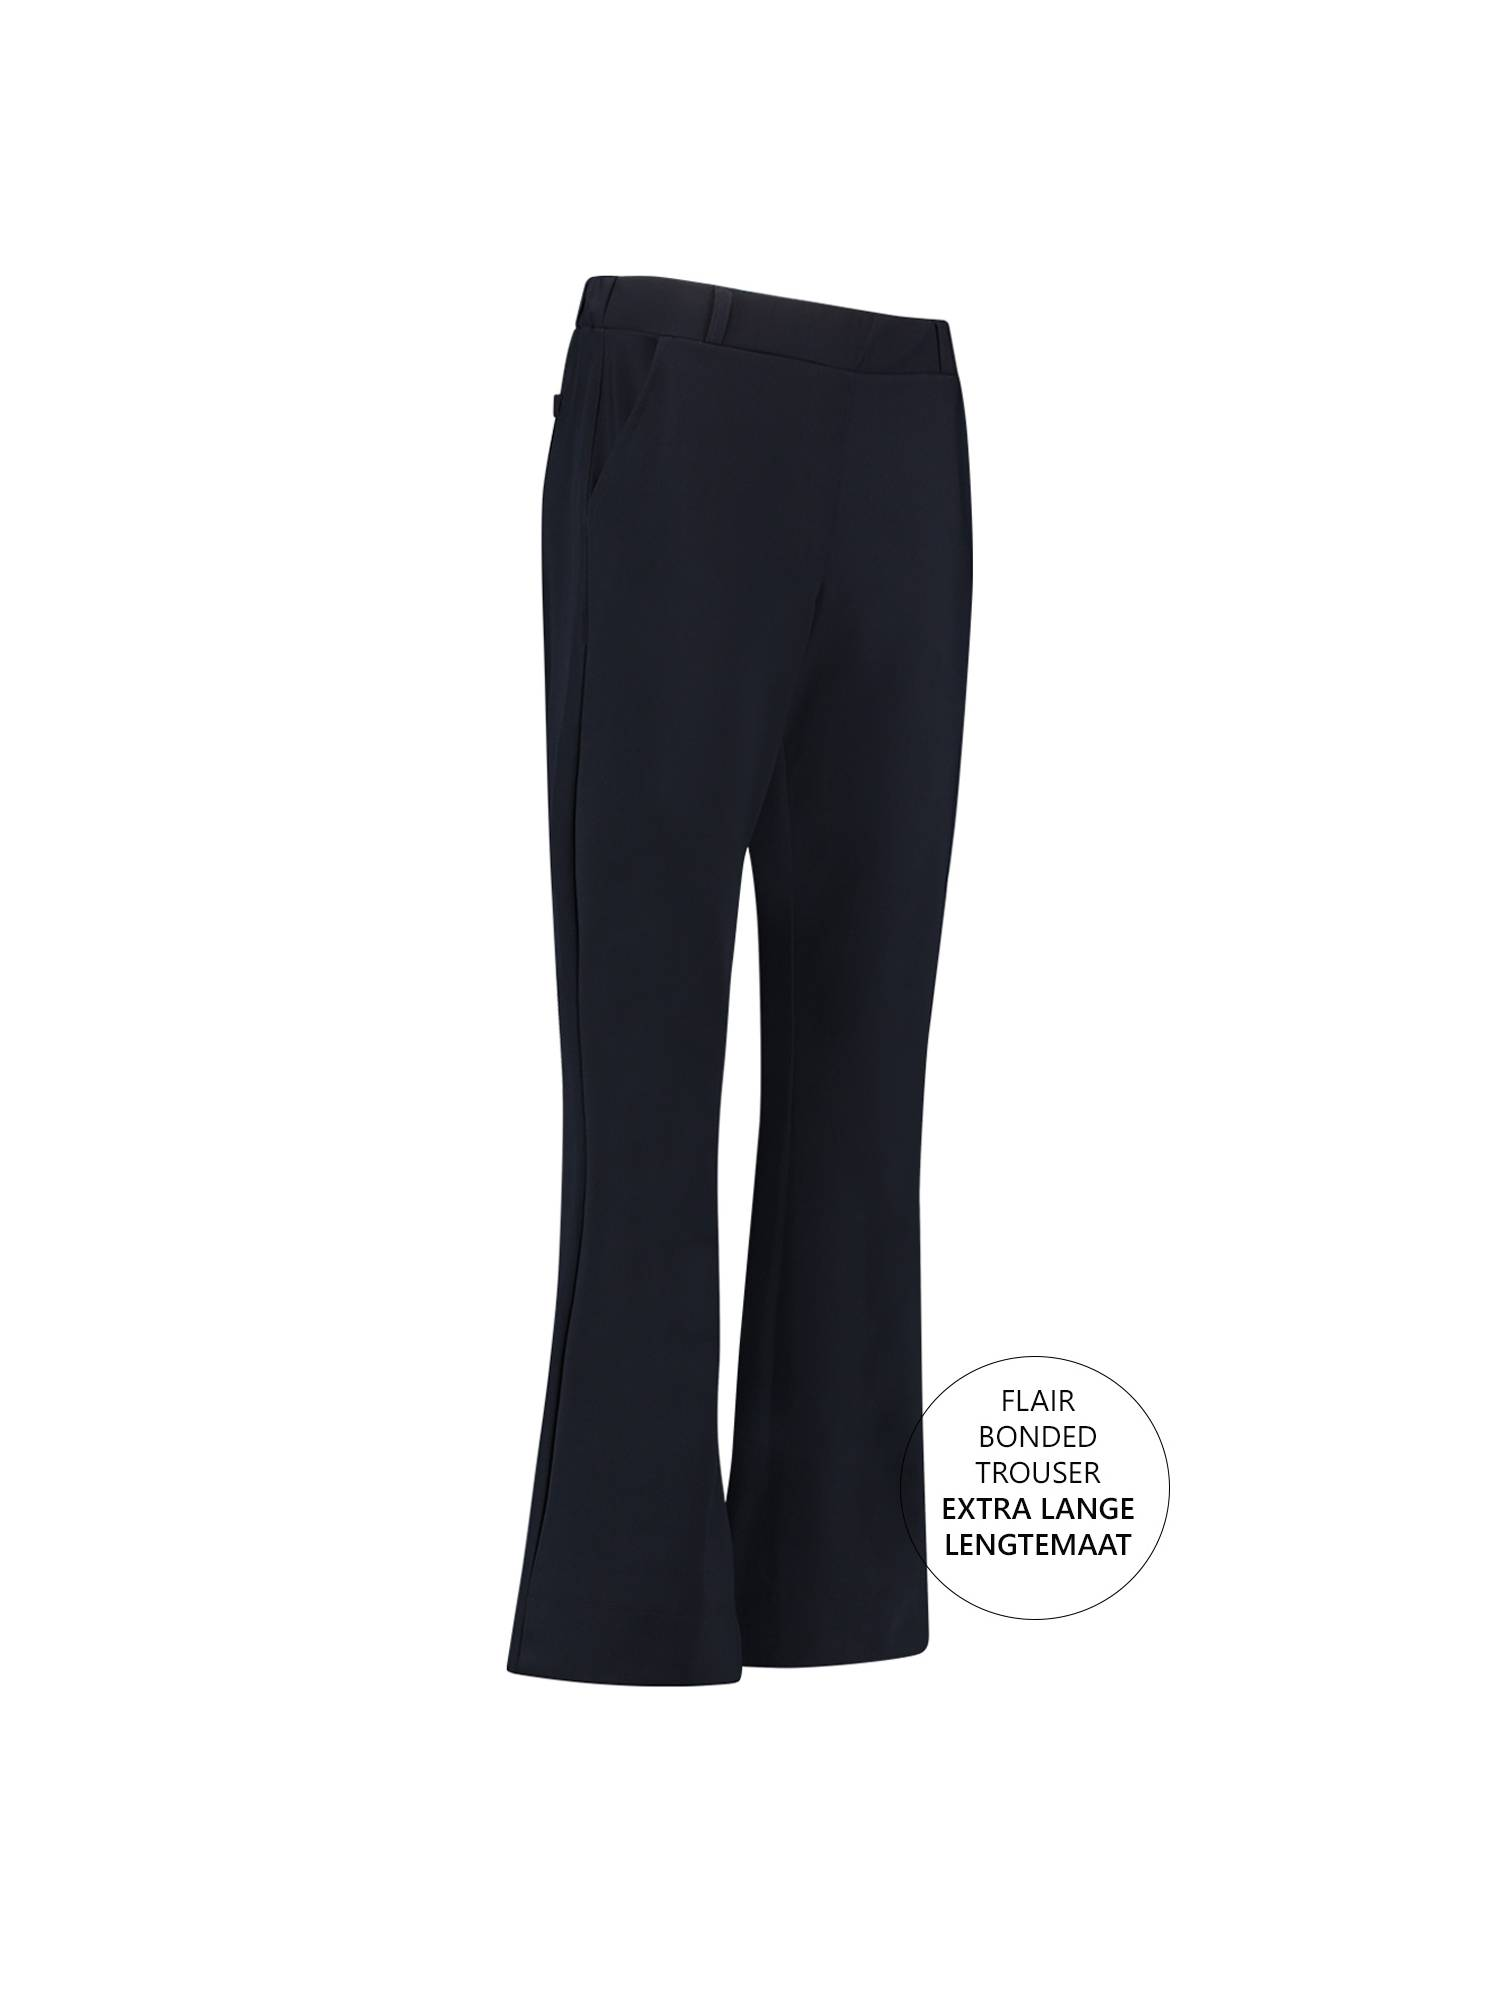 Studio Anneloes Flair LONG bonded trouser 6900 Dark blue | Pico Women Fashion & More